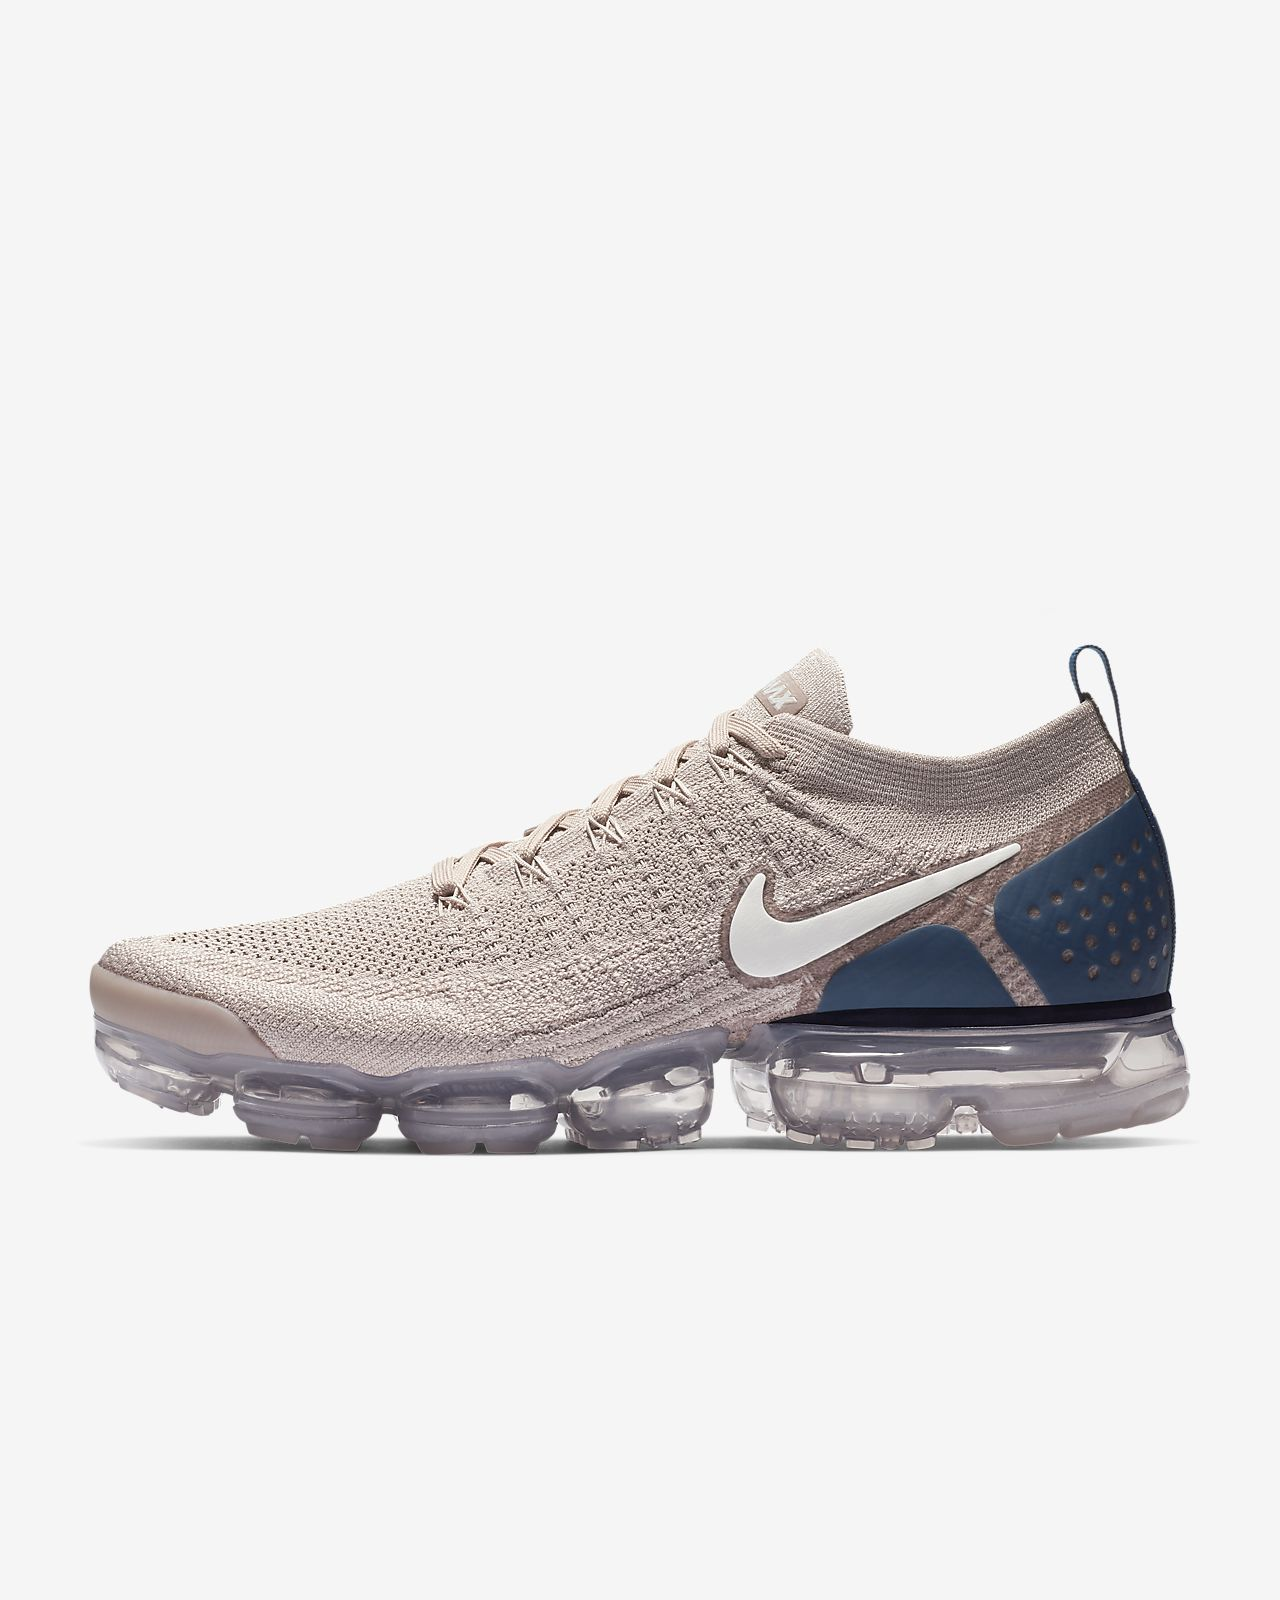 reputable site 3c24d 86967 Shoe. Nike Air VaporMax Flyknit 2